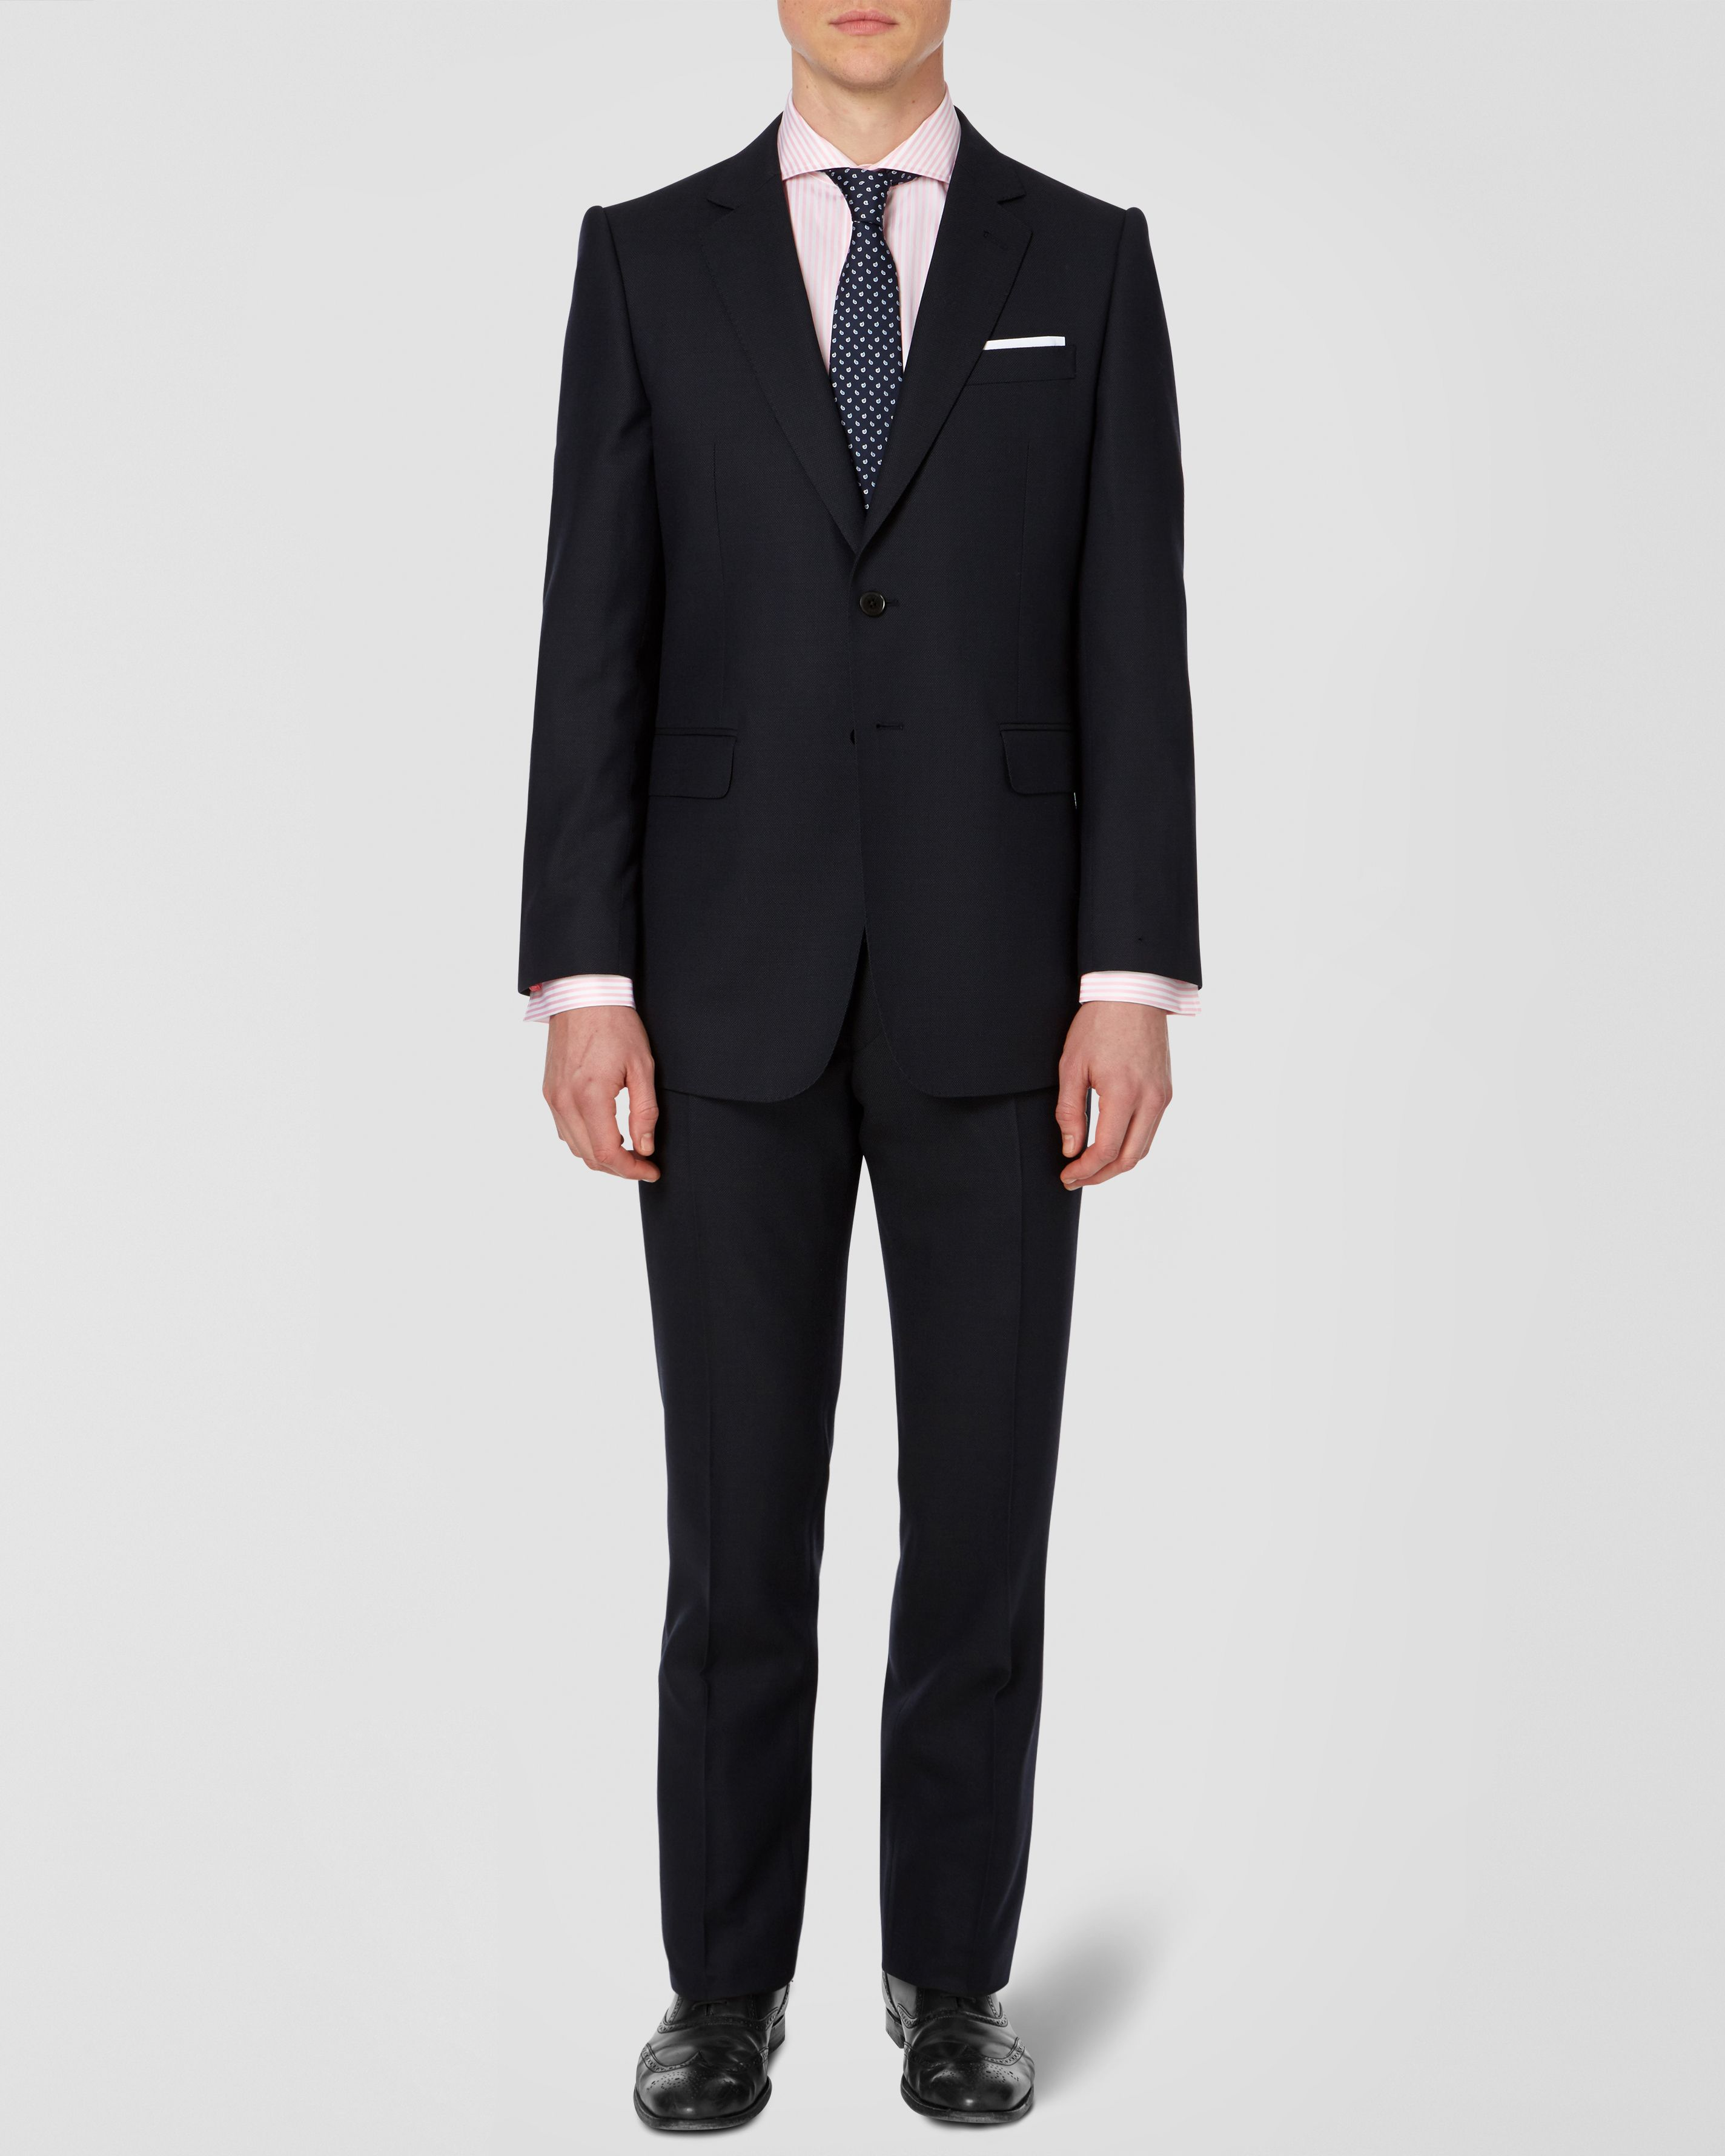 Birdseye single breasted suit jacket